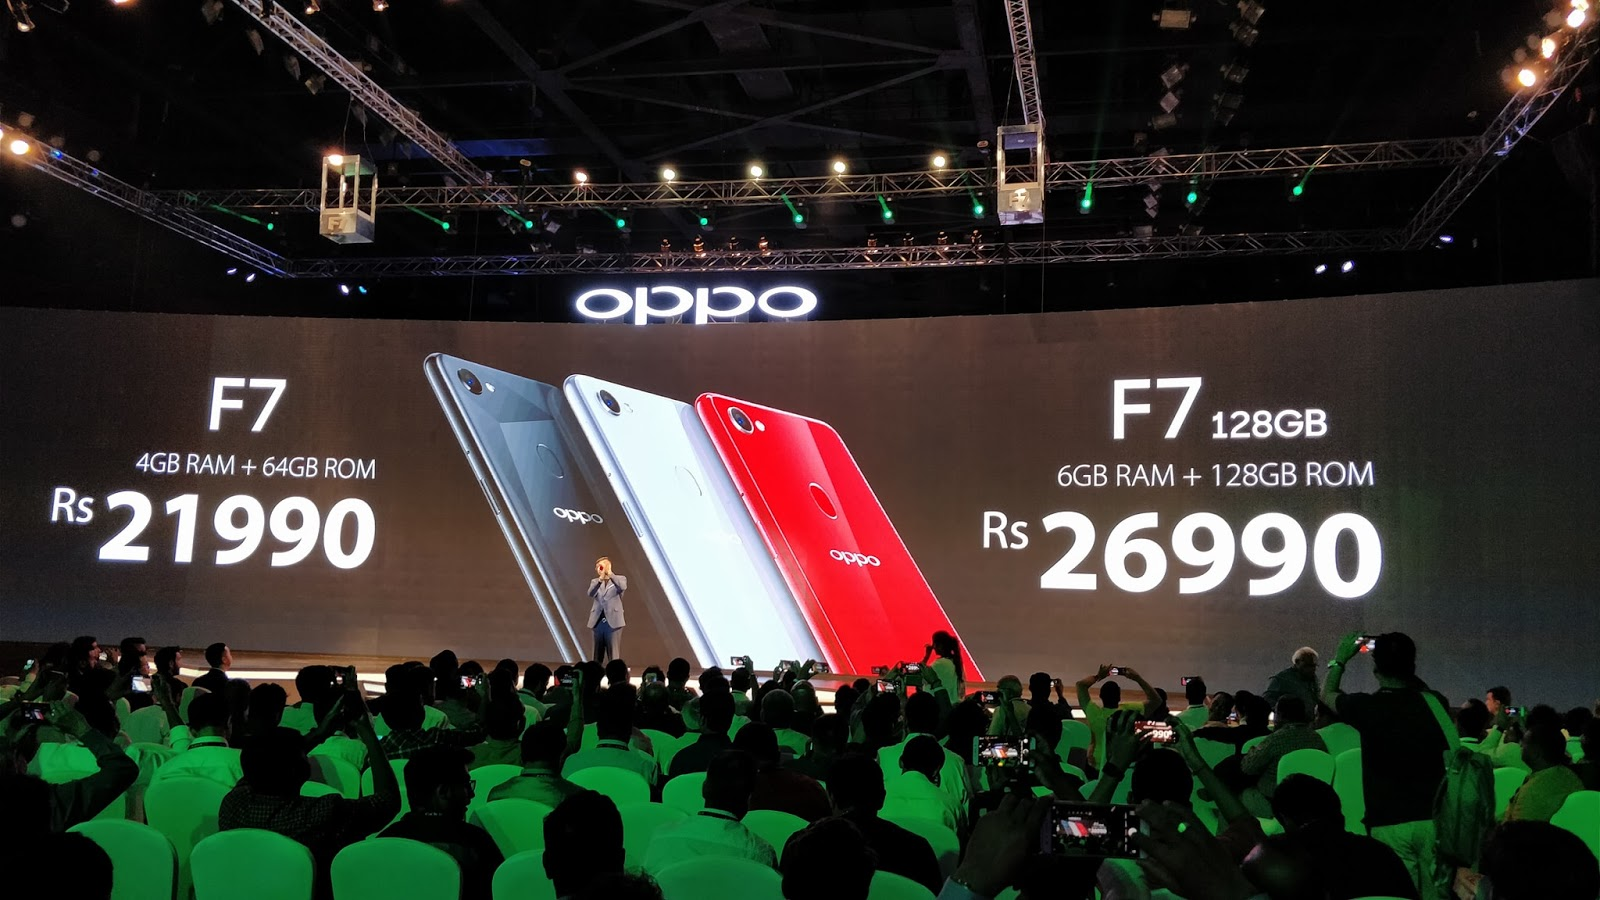 Oppo Launches F7 The Selfie Expert Phone Built With Best Of Ai Samsung Note 101 2014 Edition Garansi Indonesia Black Latest Coloros 50 And Powerful Hardware